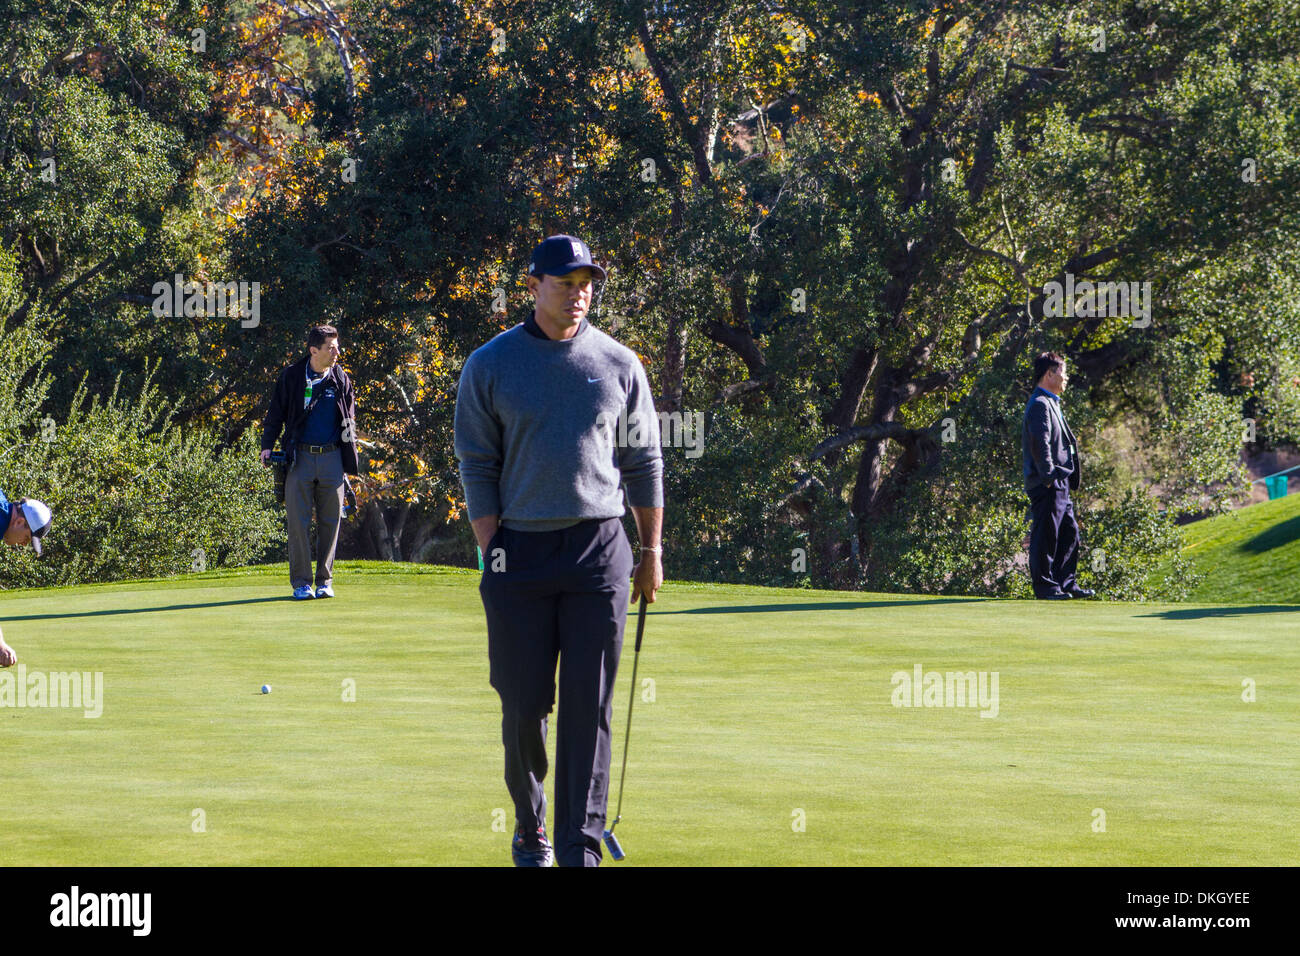 Tiger Woods at the 2013 Northwestern Mutual Challenge at Sherwood Country Club in Thousand Oaks California - Stock Image